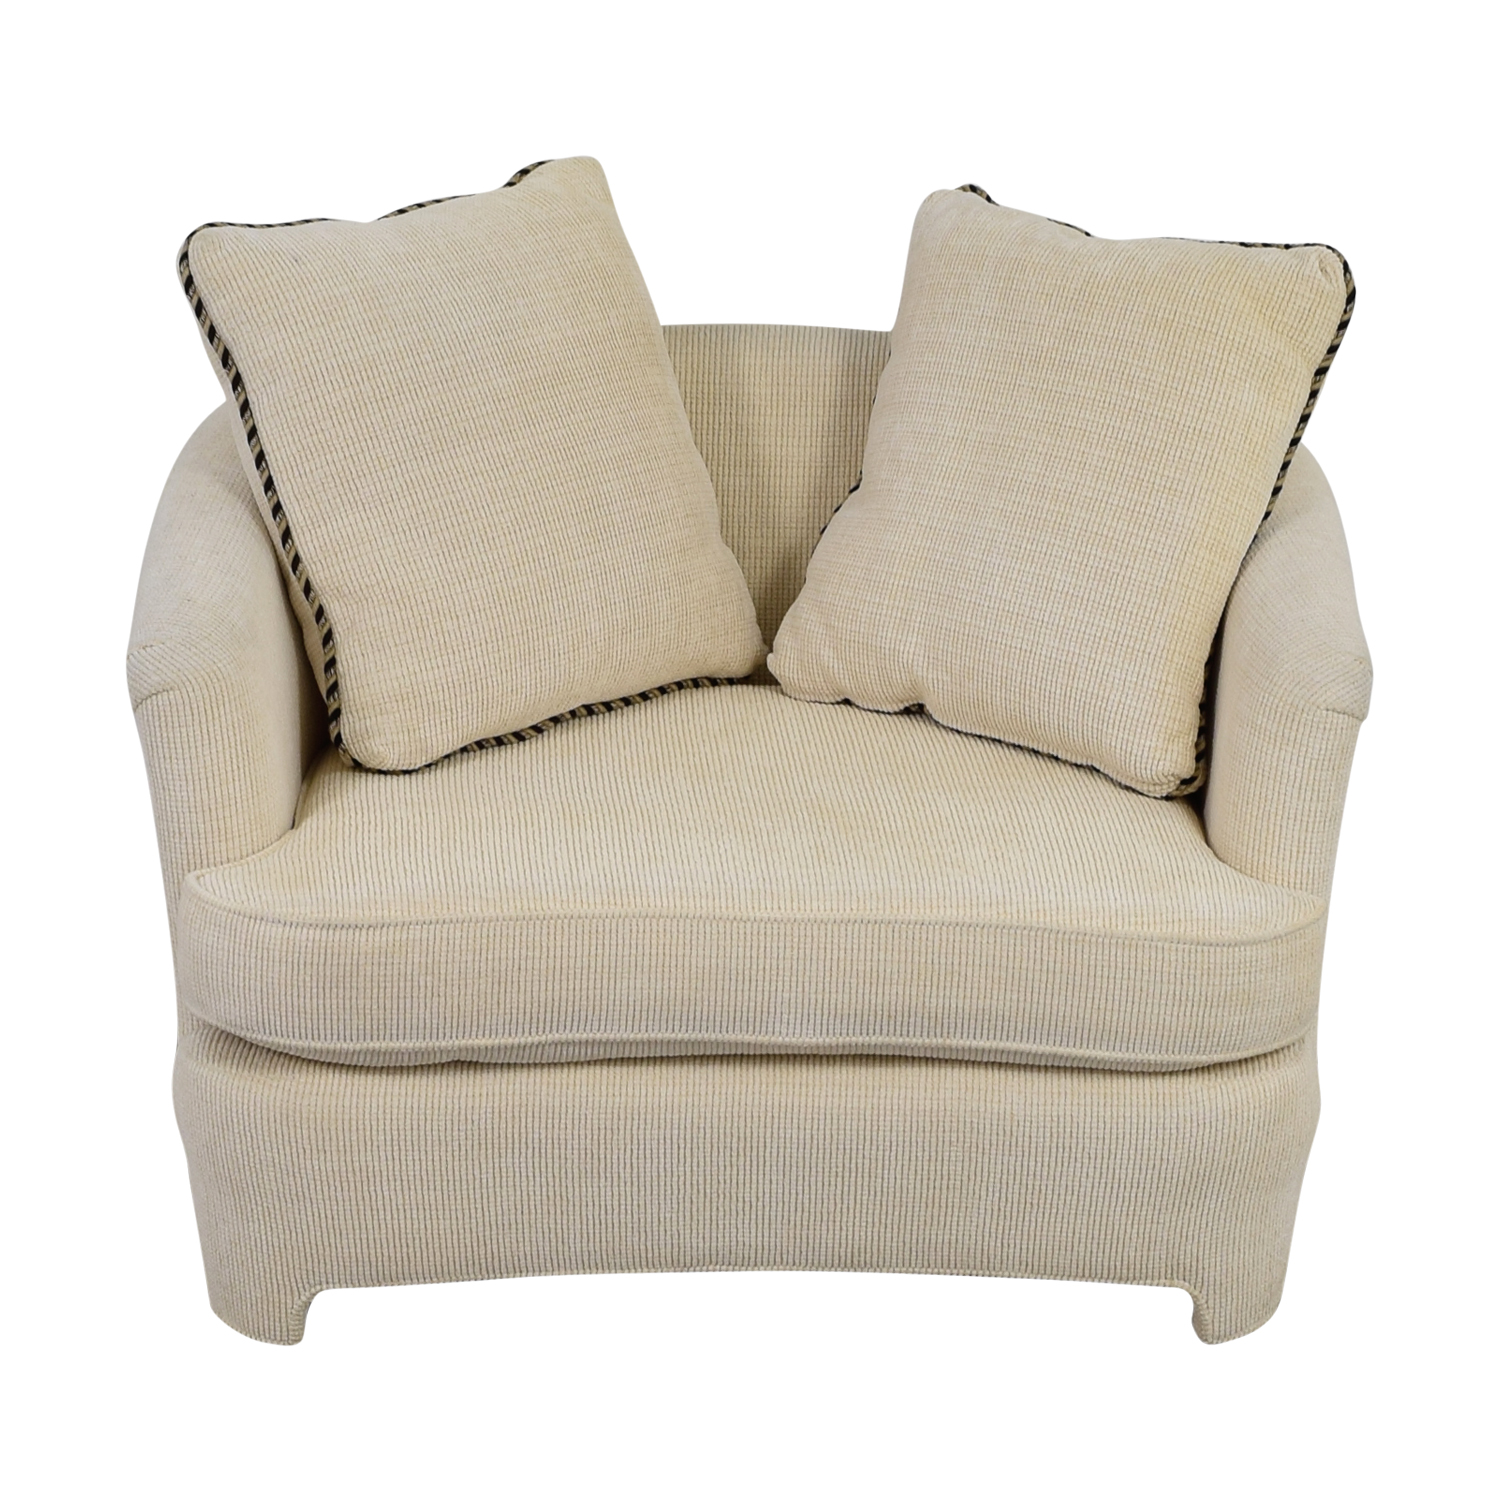 Off White Accent Chair with Pillows